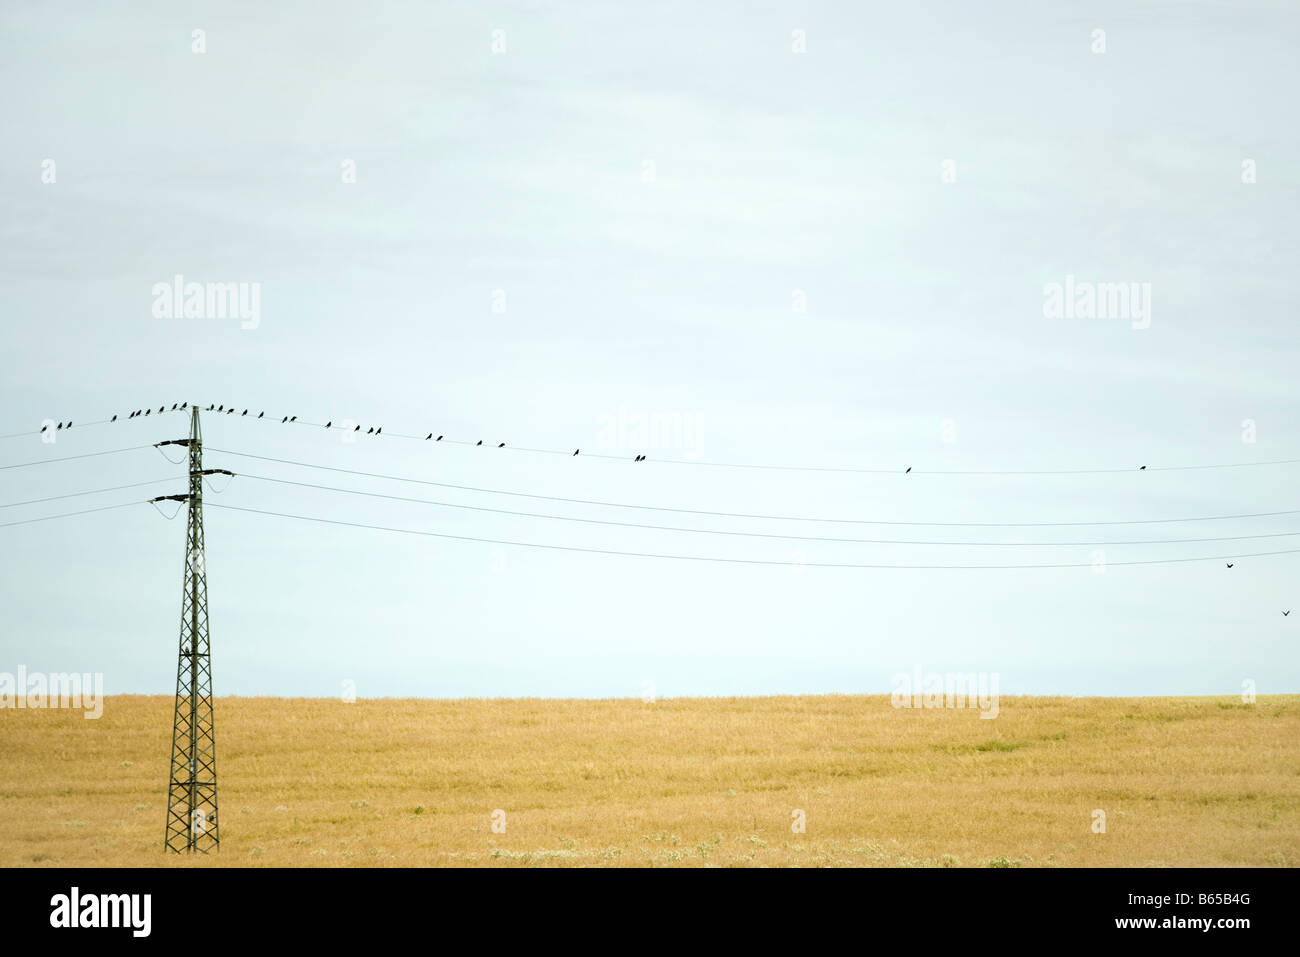 Power line over field, birds perching on top wire - Stock Image